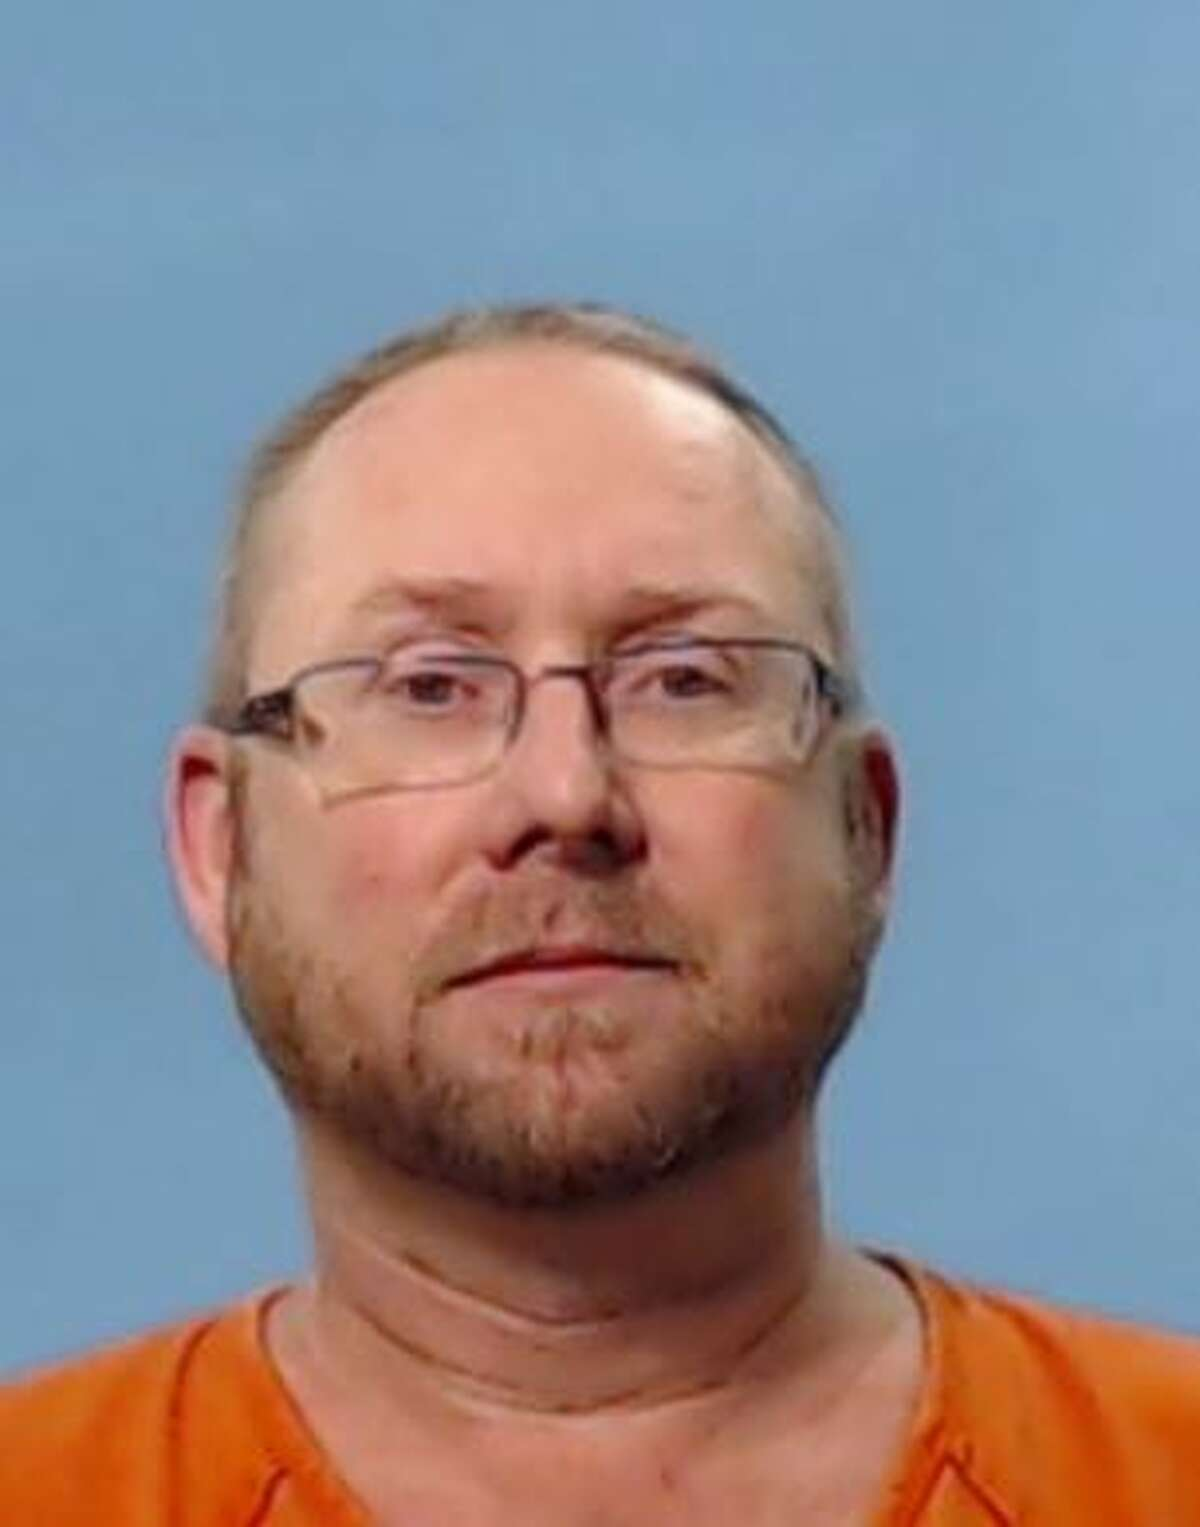 William Argo was arrested on a third or more charge of DWI.